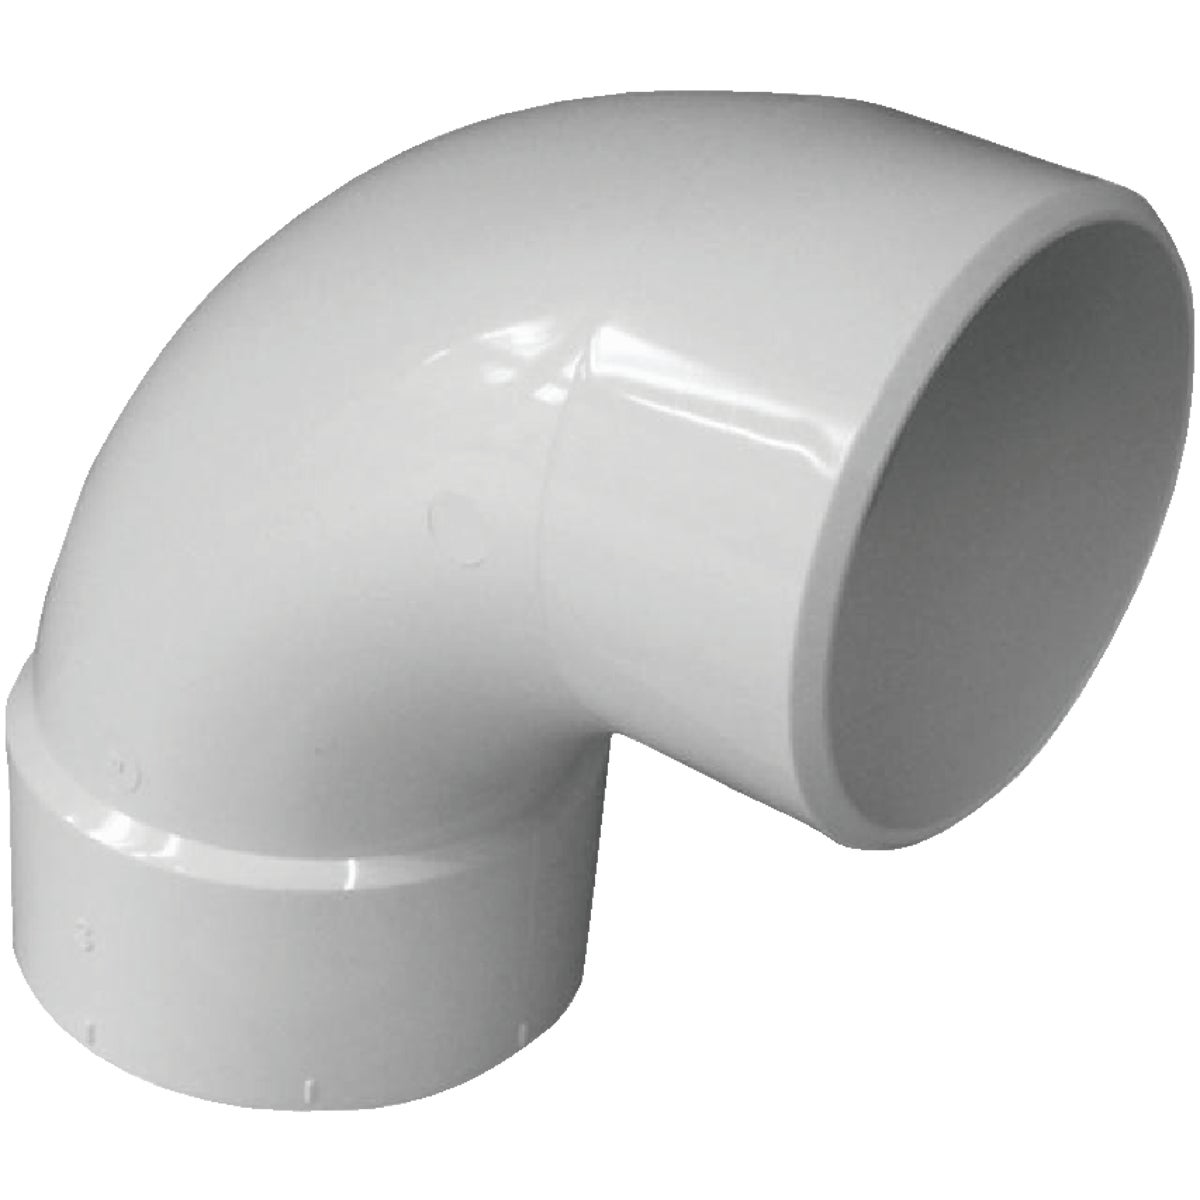 "3"" 90 S/D PVC ST ELBOW - 42936 by Genova Inc"